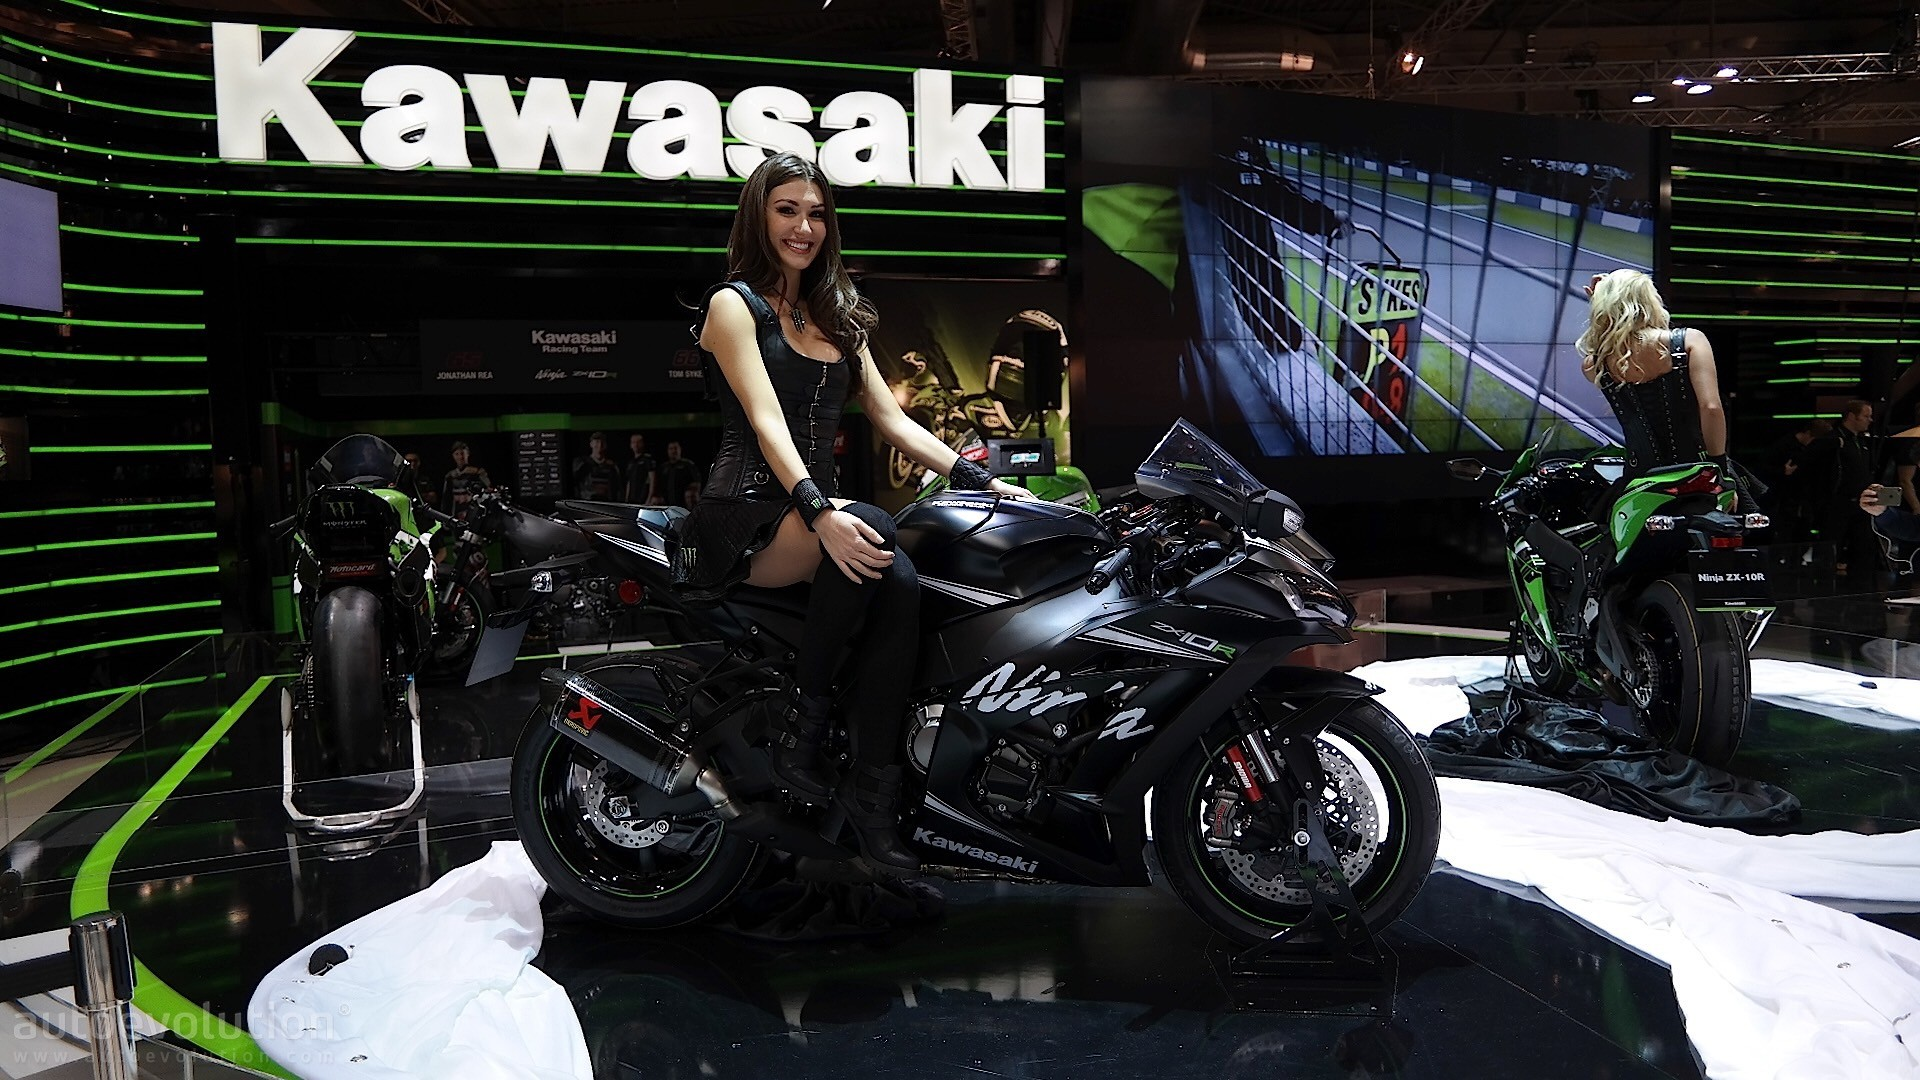 Bmw Girl Wallpaper Eicma 2016 Kawasaki Ninja Zx 10r And Krt Replica Pack 210